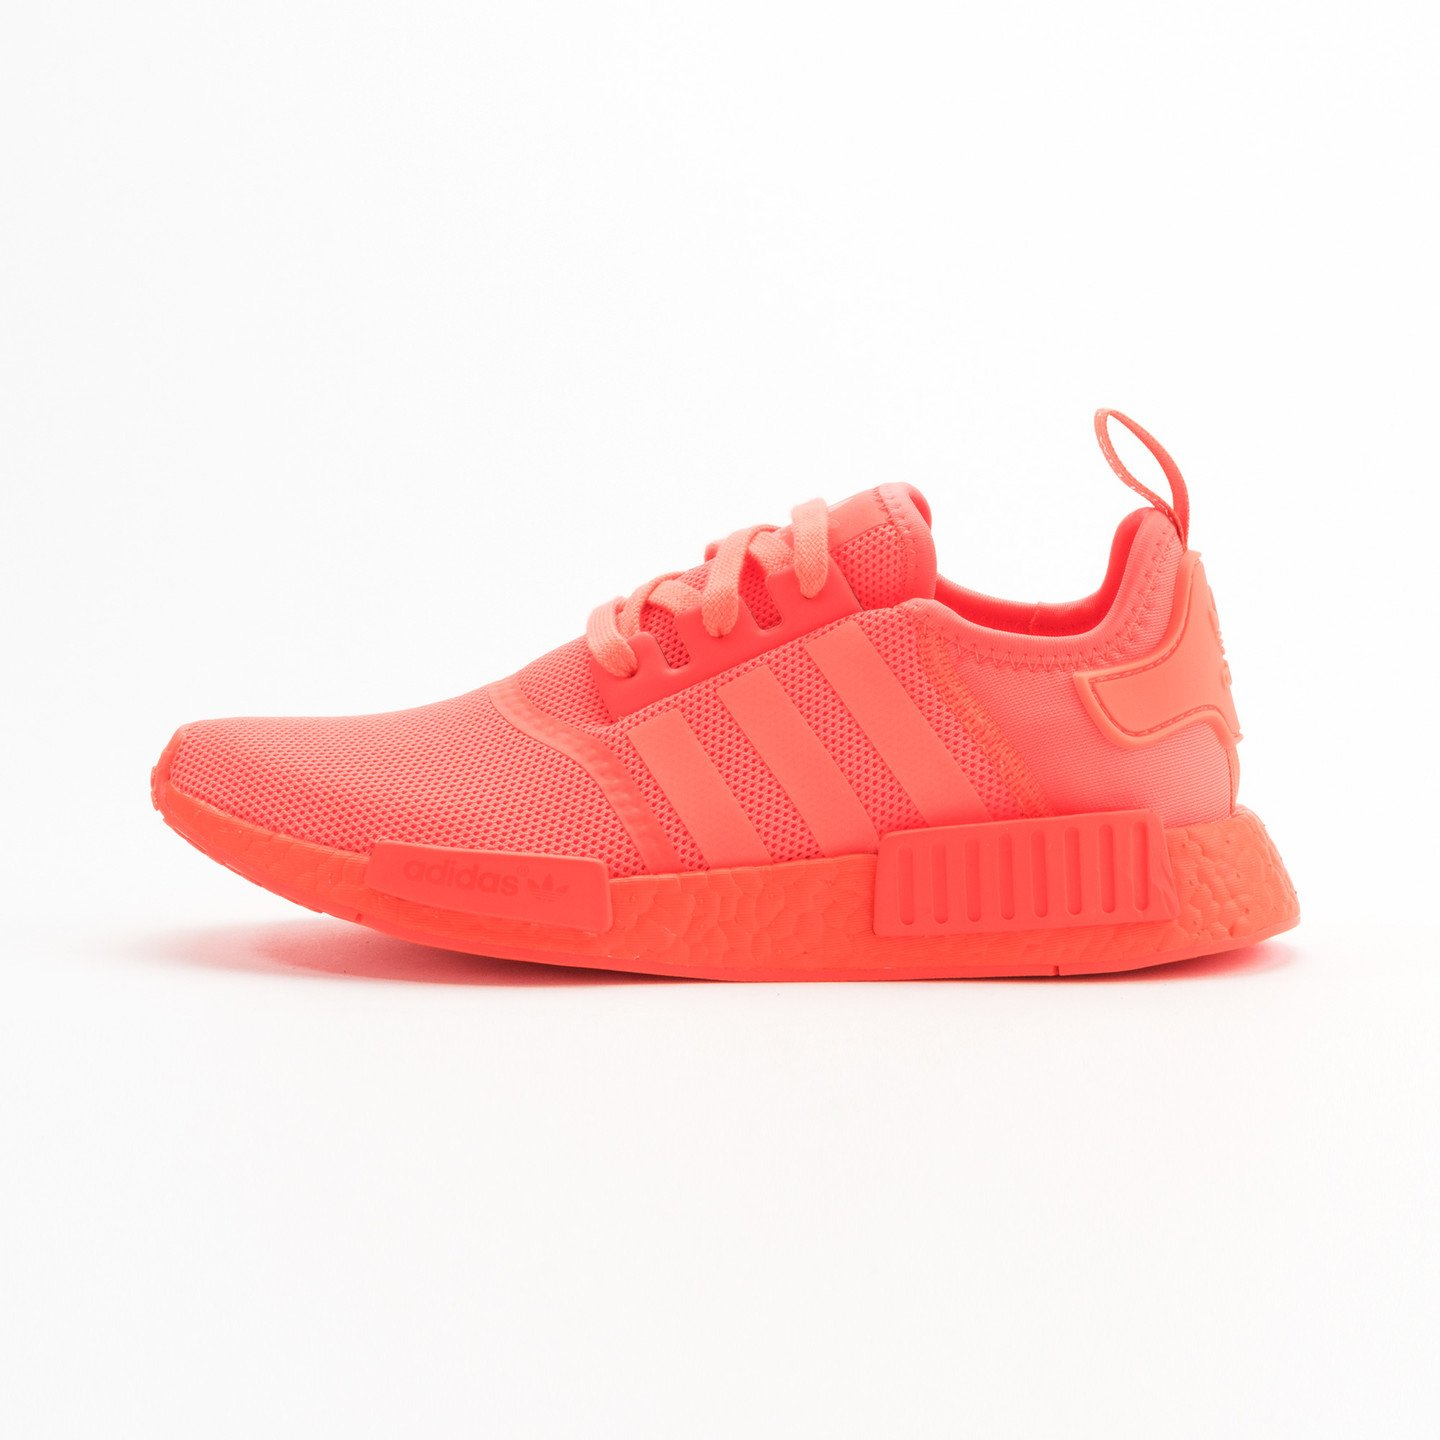 Adidas NMD R1 Runner 'All Red' Solar Red S31507-43.33